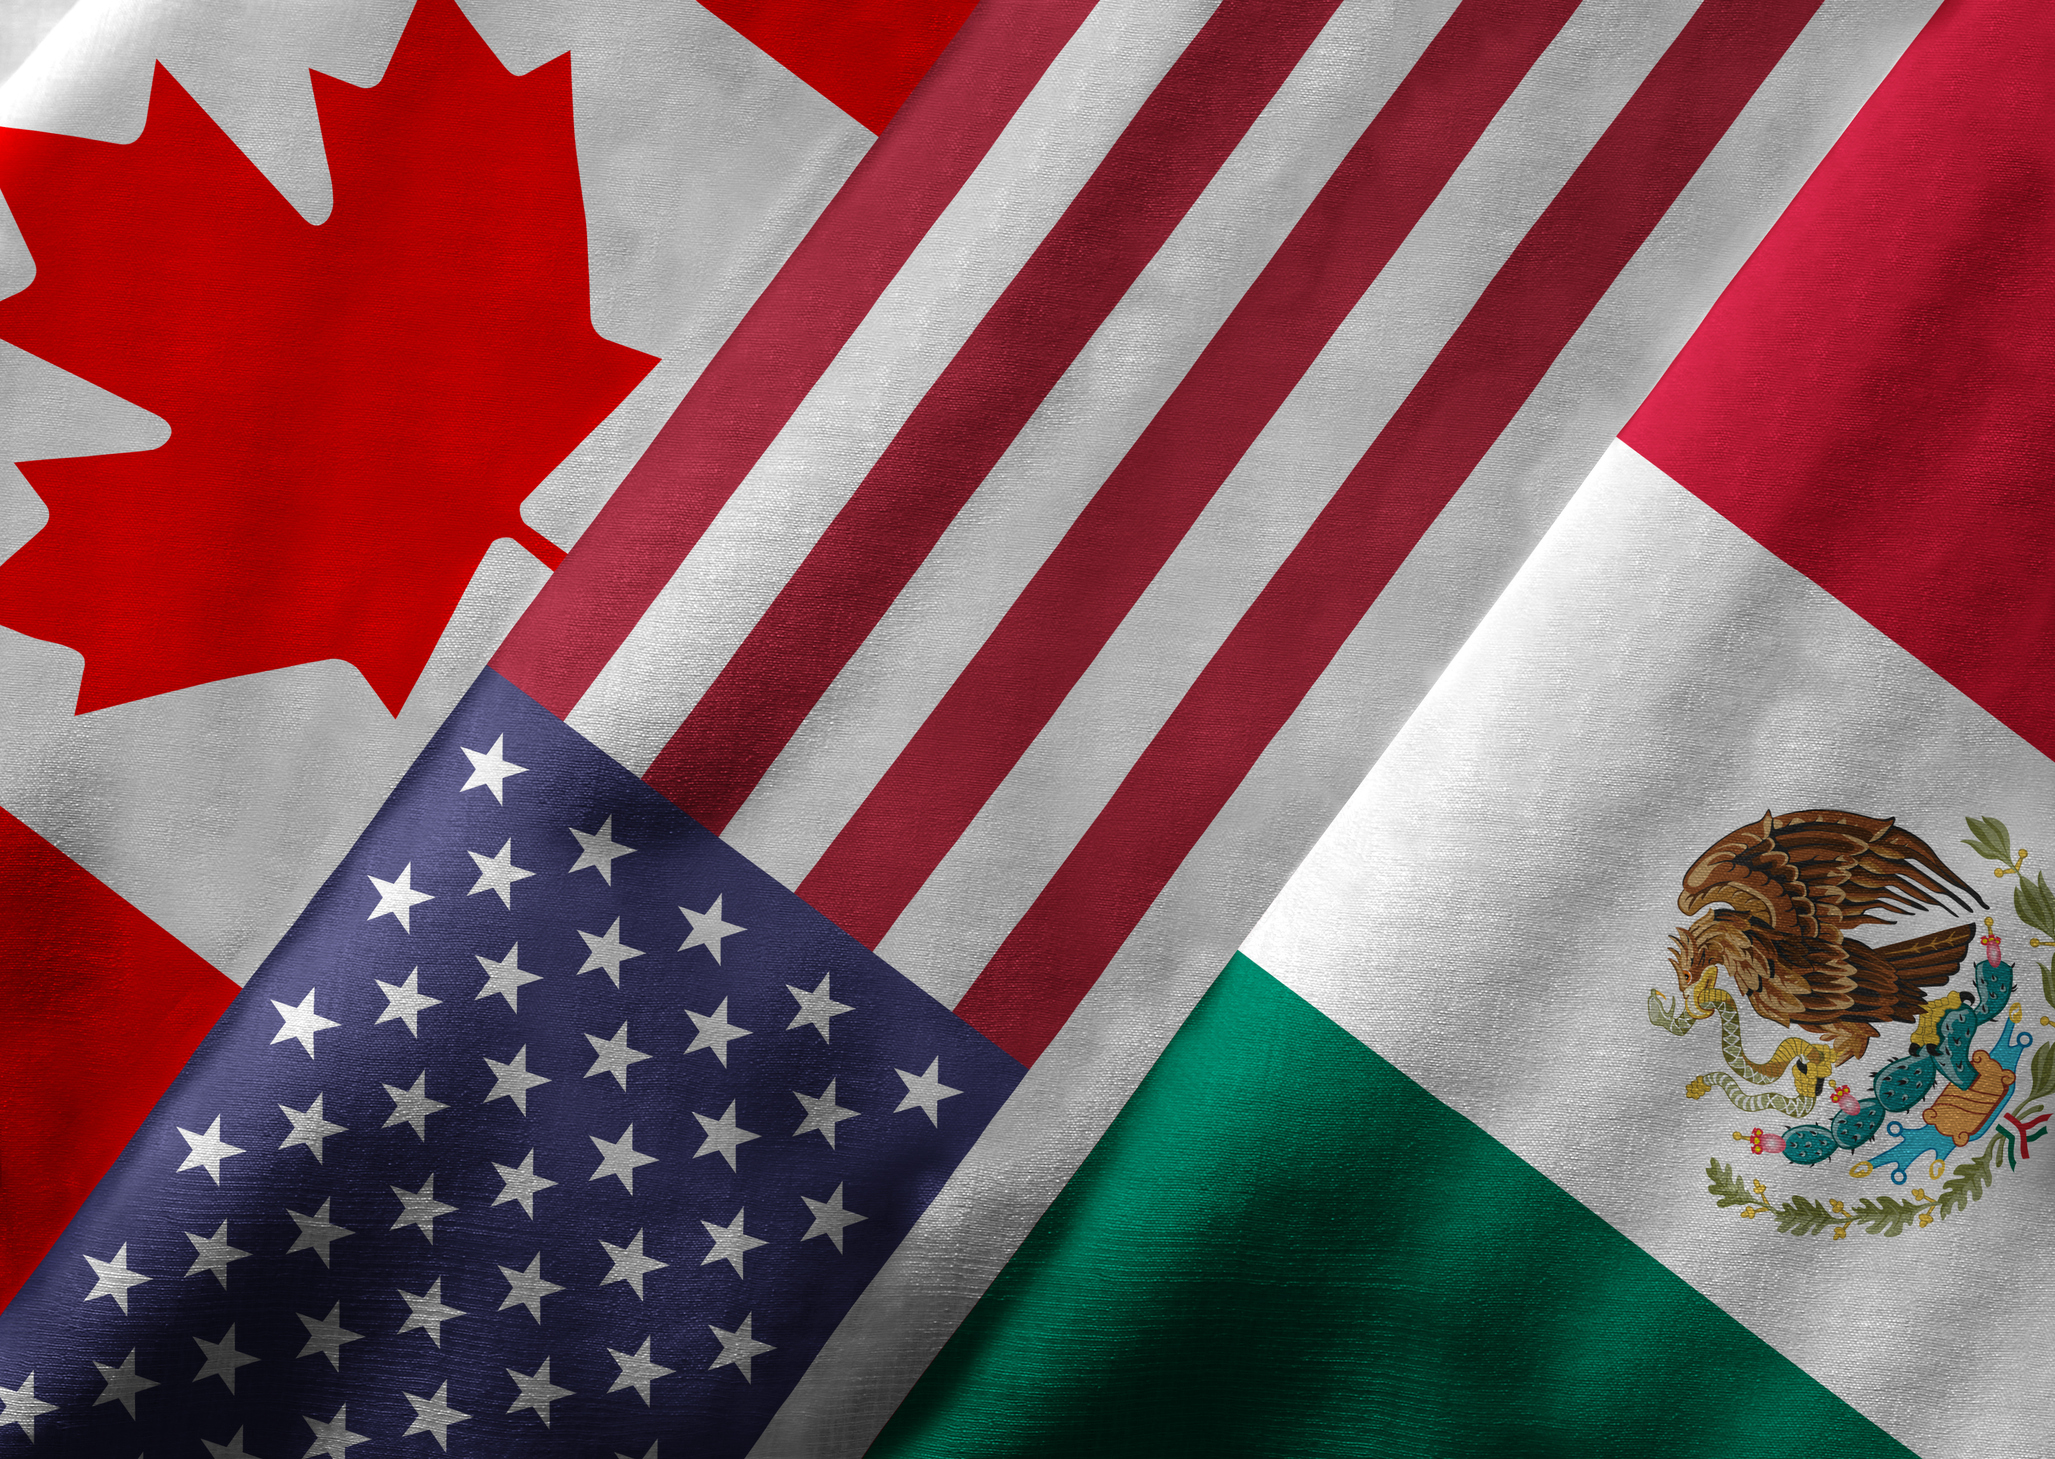 Mexico Economy Minister: NAFTA Must Remain Trilateral Accord